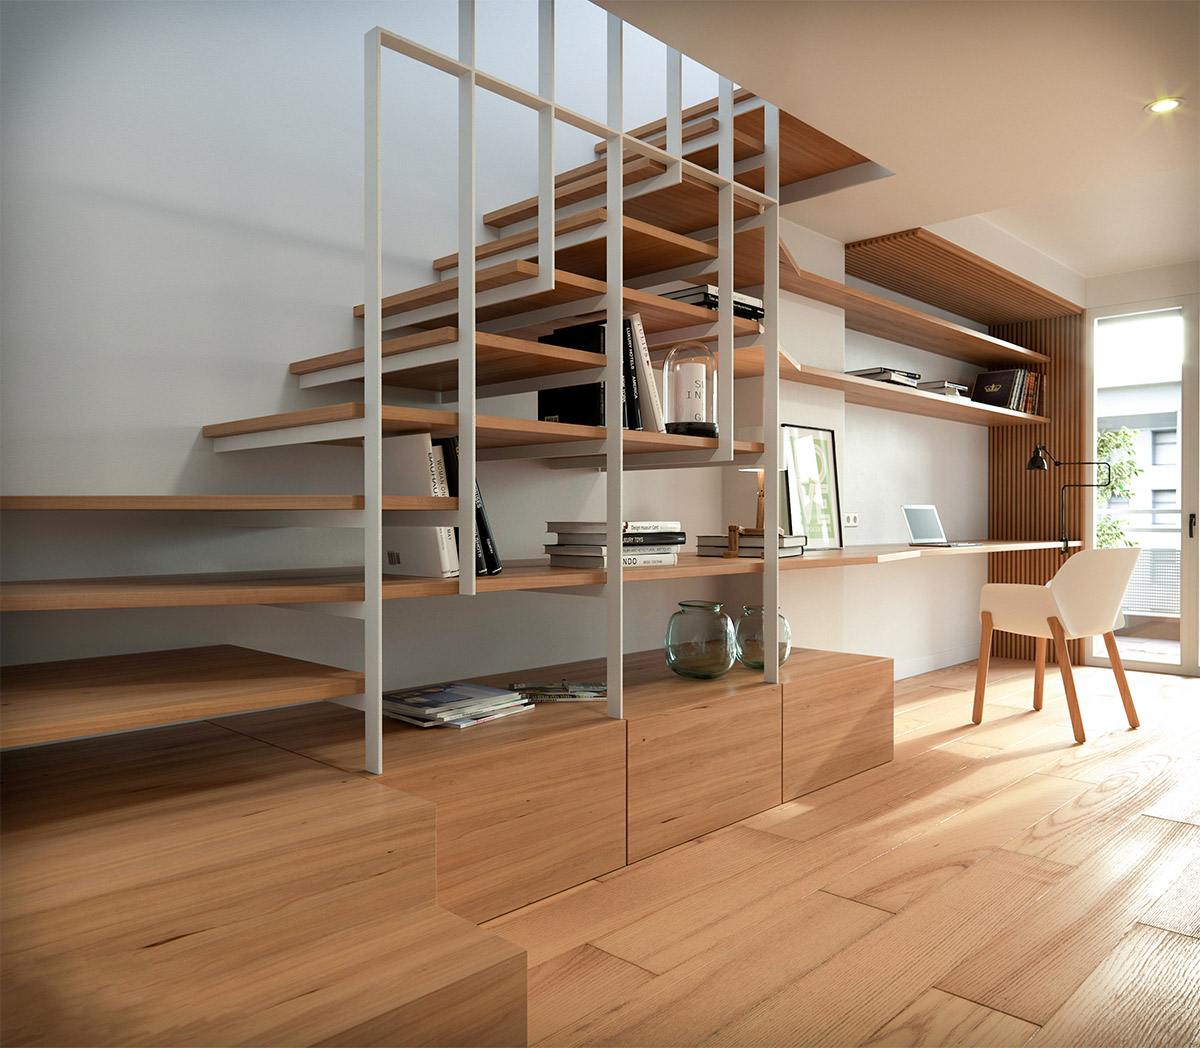 Impressive Stairs Pictures 2 Wood Stair Design Ideas: 51 Stunning Staircase Design Ideas